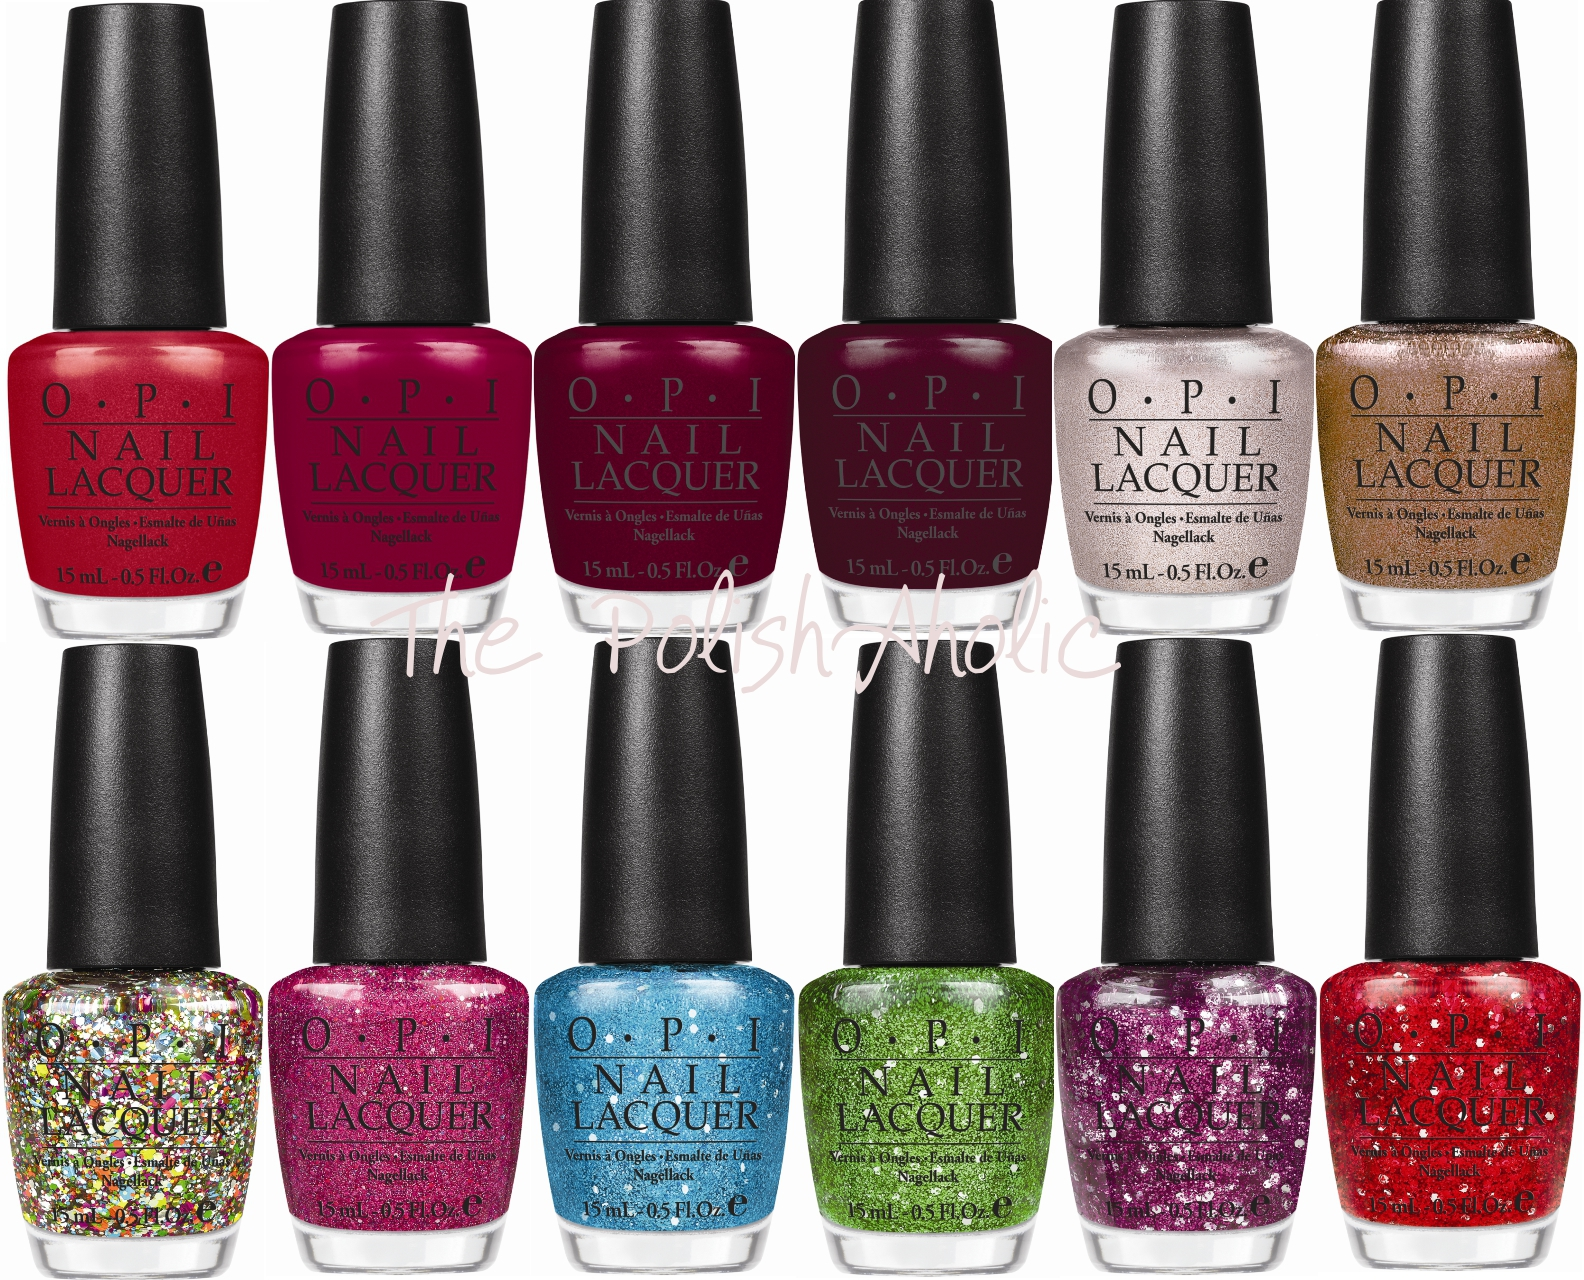 The PolishAholic: OPI Muppets Collection for Holiday 2011 Preview!